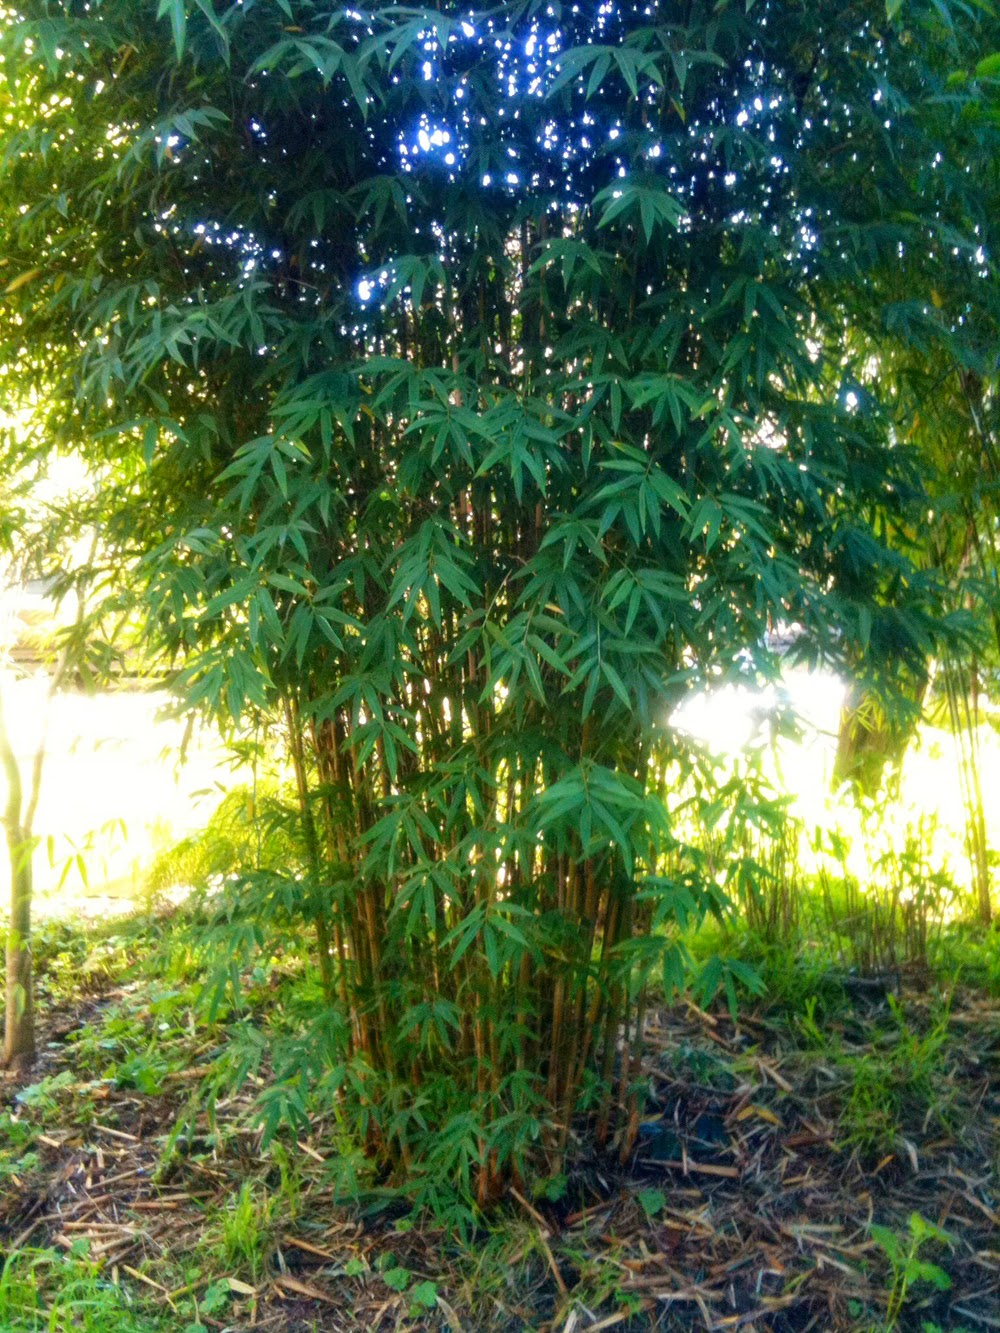 Foliage of the candy cane bamboo